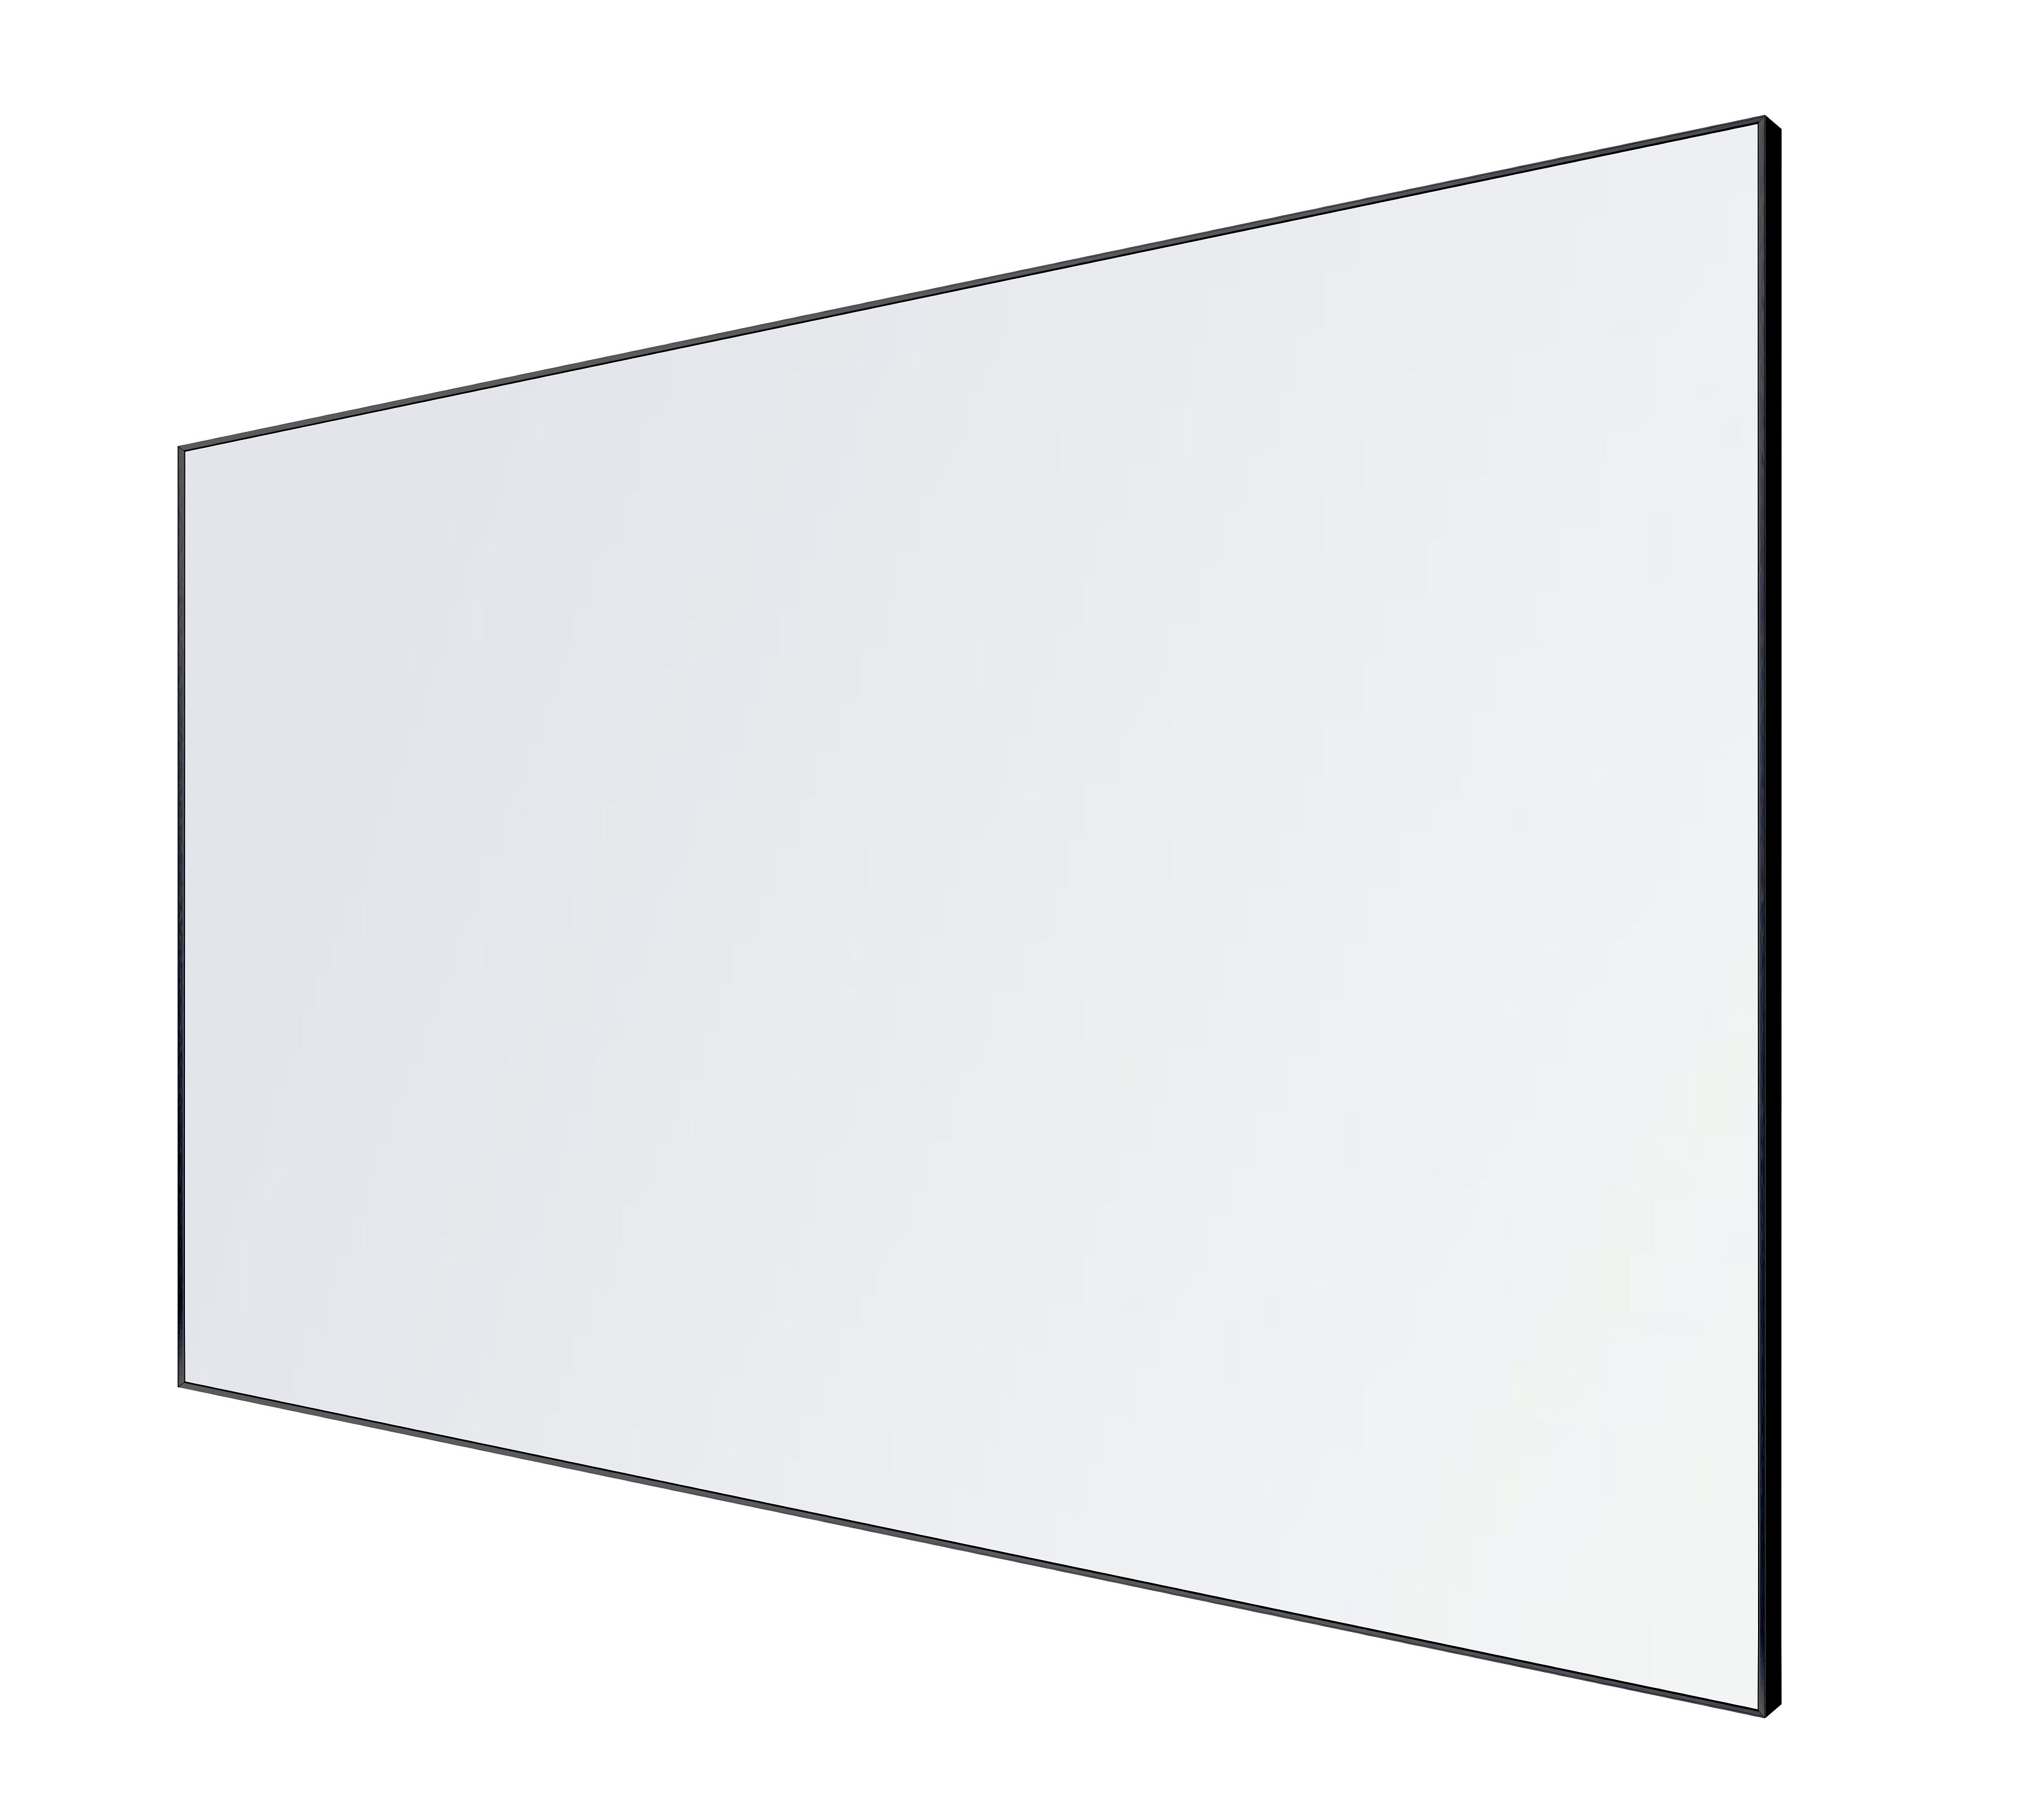 Porcelain Whiteboard LX Edge Frame Powder Coated BLACK